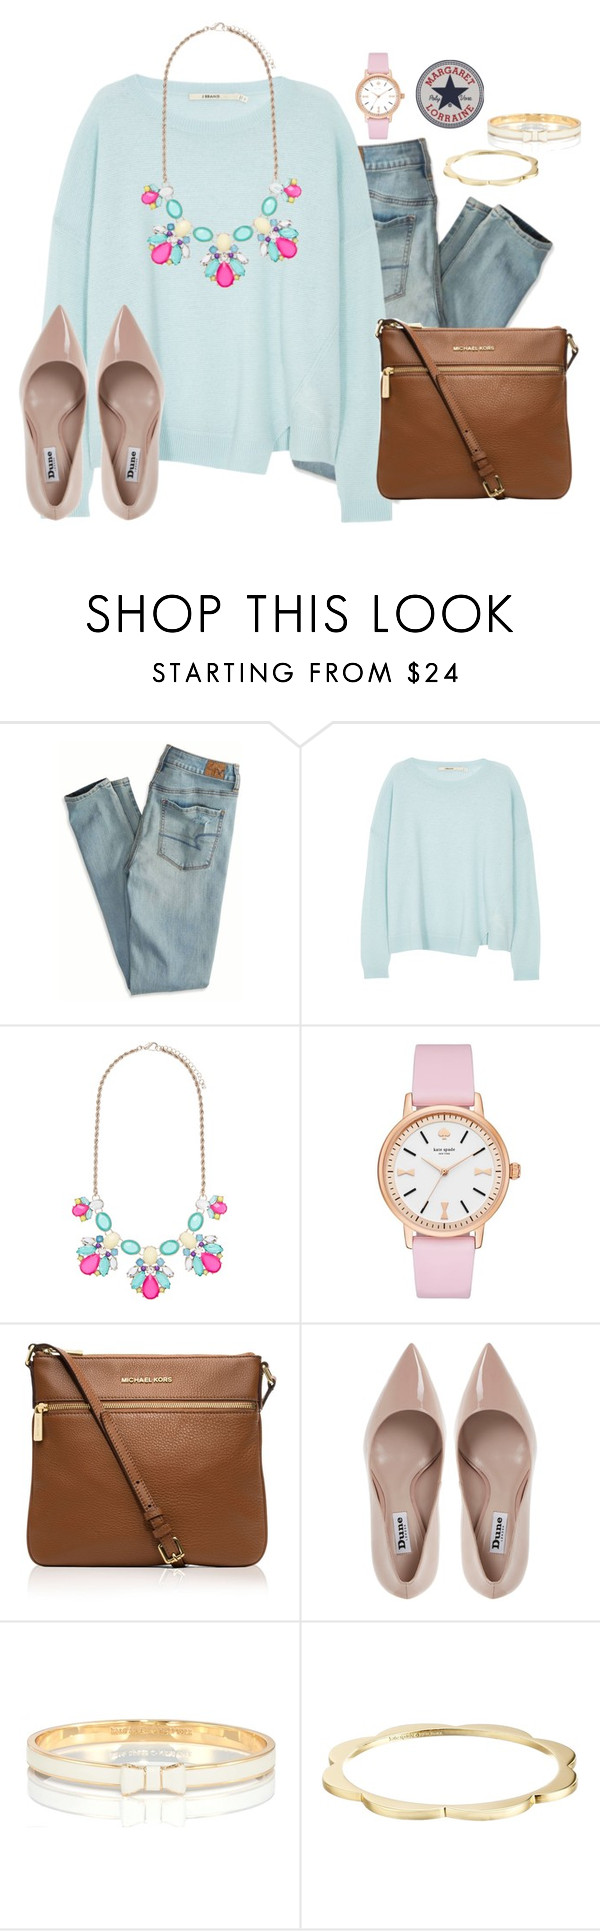 """The SAT was canceled  but rescheduled "" by margaretlorraine02 ❤ liked on Polyvore featuring American Eagle Outfitters, J Brand, Forever New, Kate Spade, MICHAEL Michael Kors, Dune, women's clothing, women's fashion, women and female"